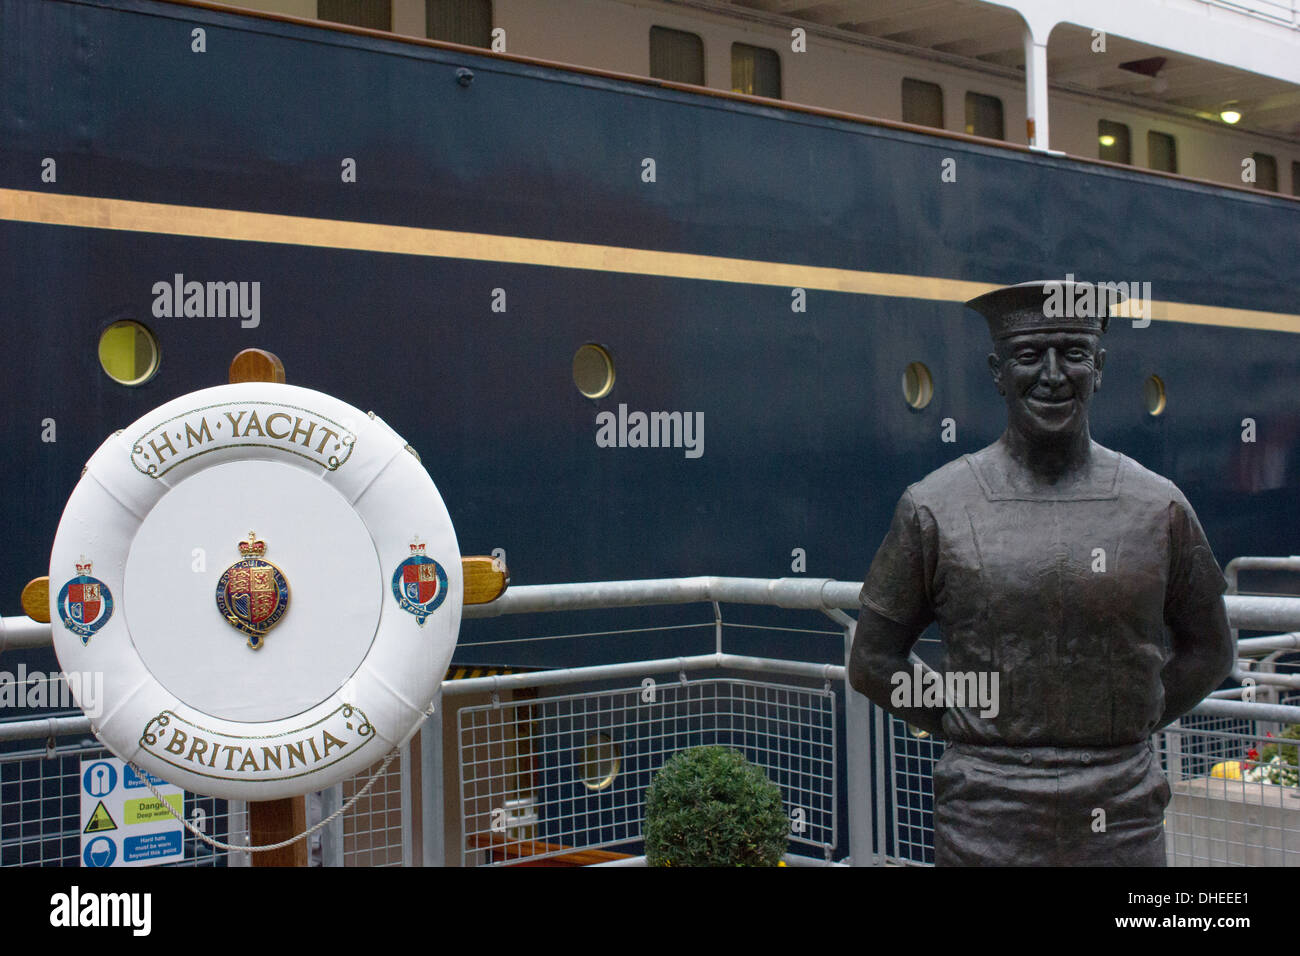 Yachtsman statue at The Royal Yacht Britannia which is berthed in Edinburgh, Scotland. - Stock Image